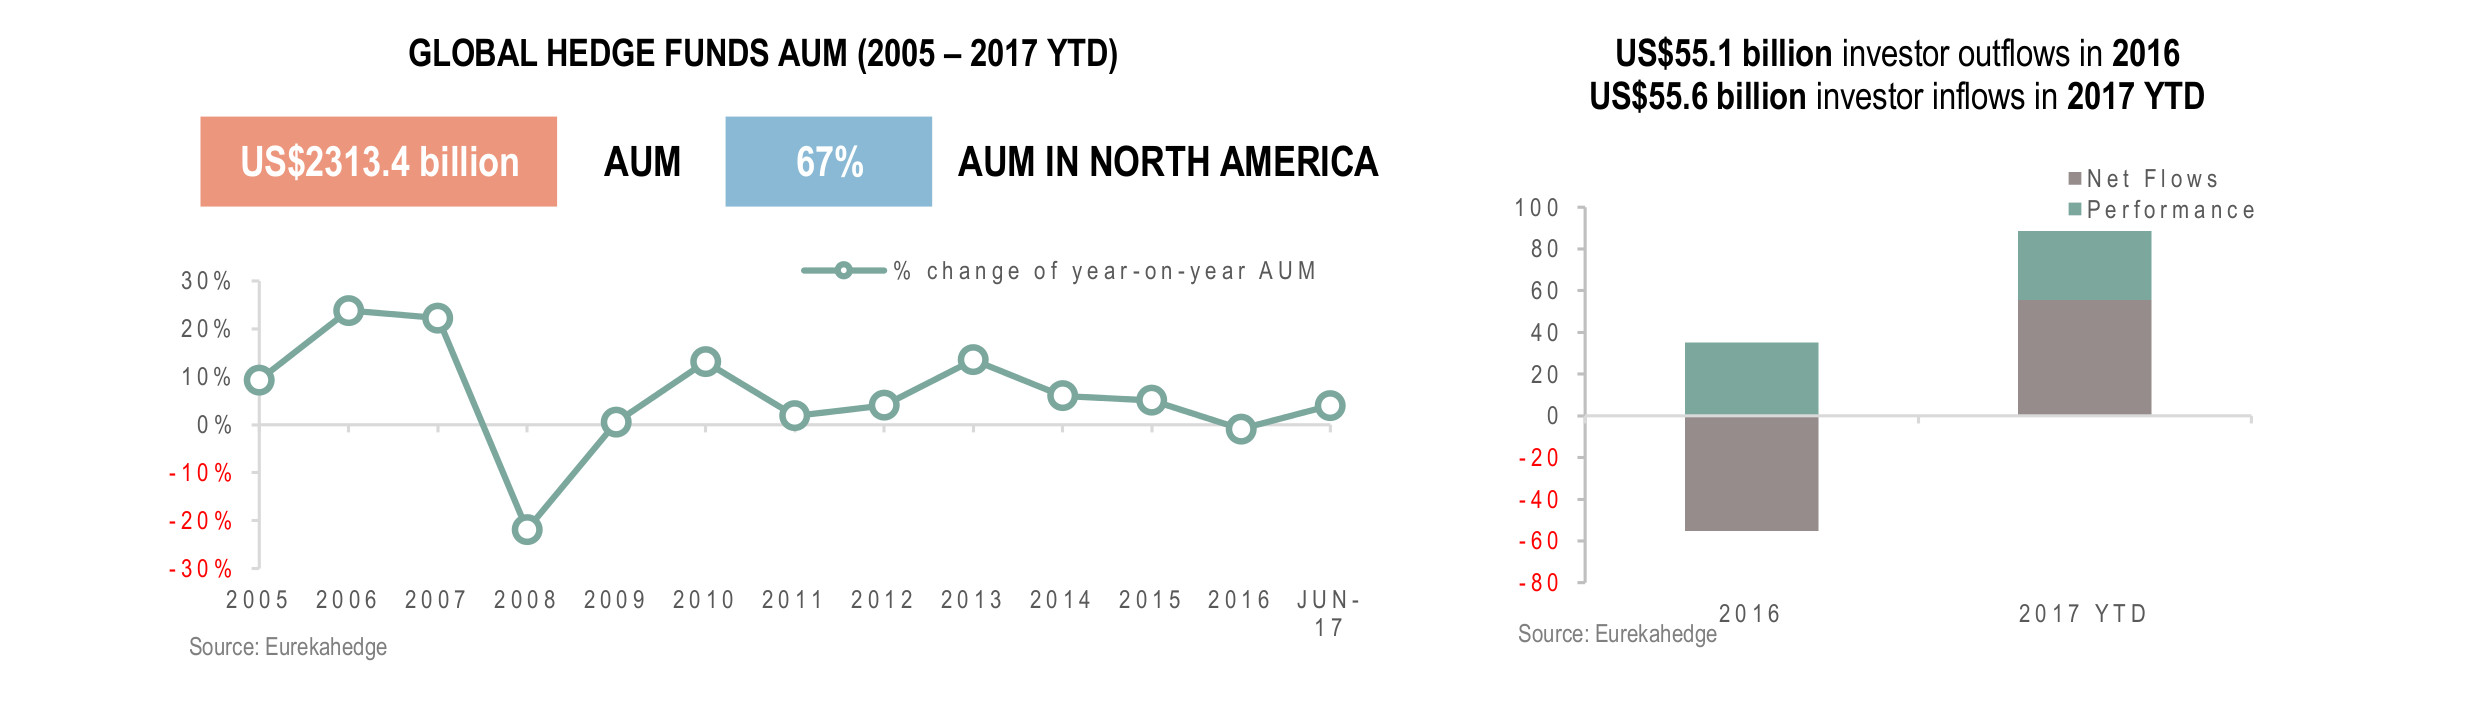 Global Hedge Fund Infographic August 2017- AUM